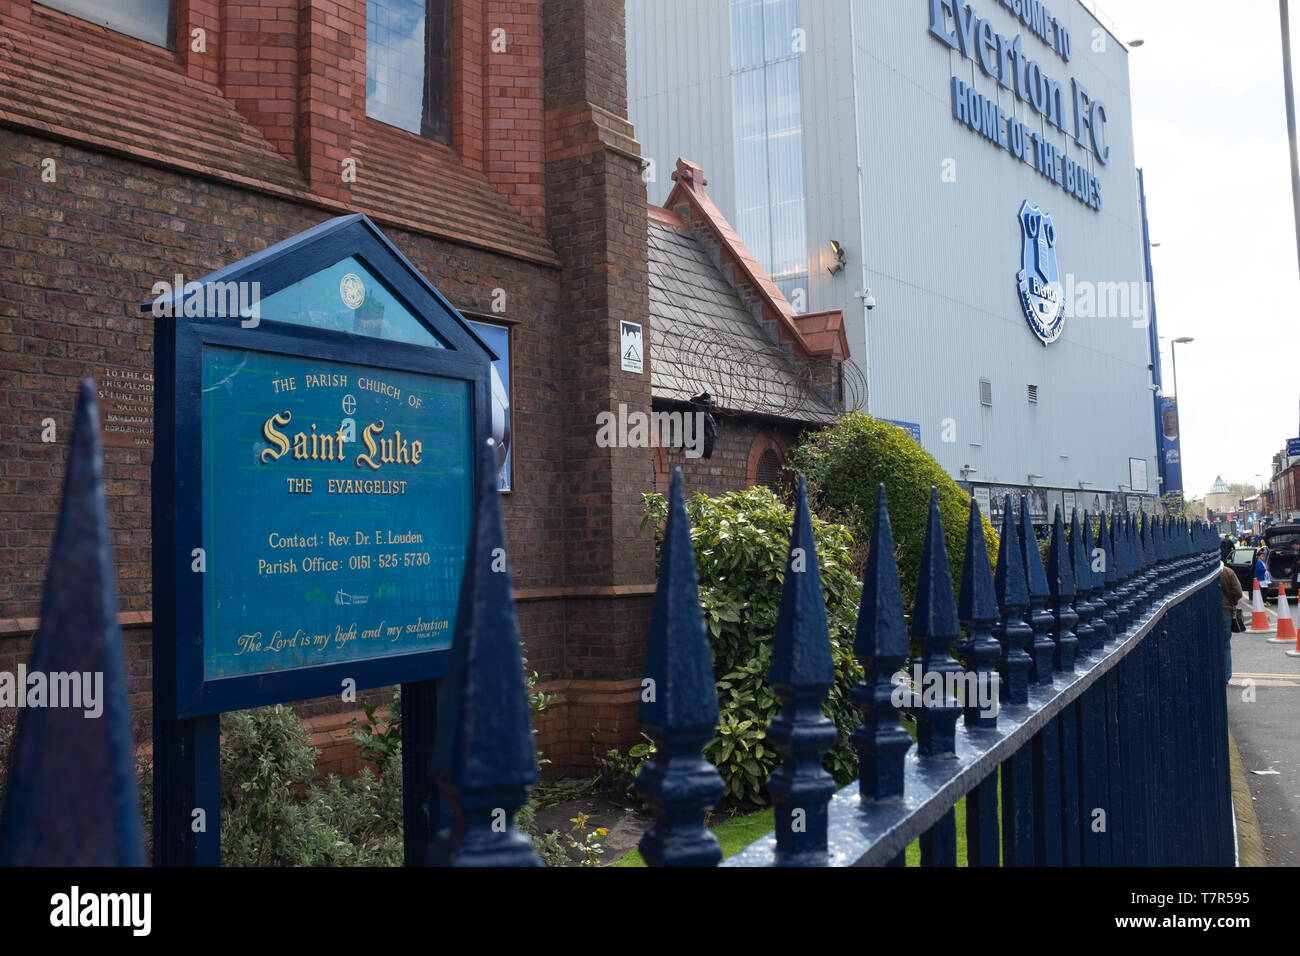 Everton, Liverpool, UK, April, 17, 2016: Saint Luke's church next to Everton Football Club, Goodison Park Stadium where the team first was founded back in 1878, nobody in the picture Stock Photo